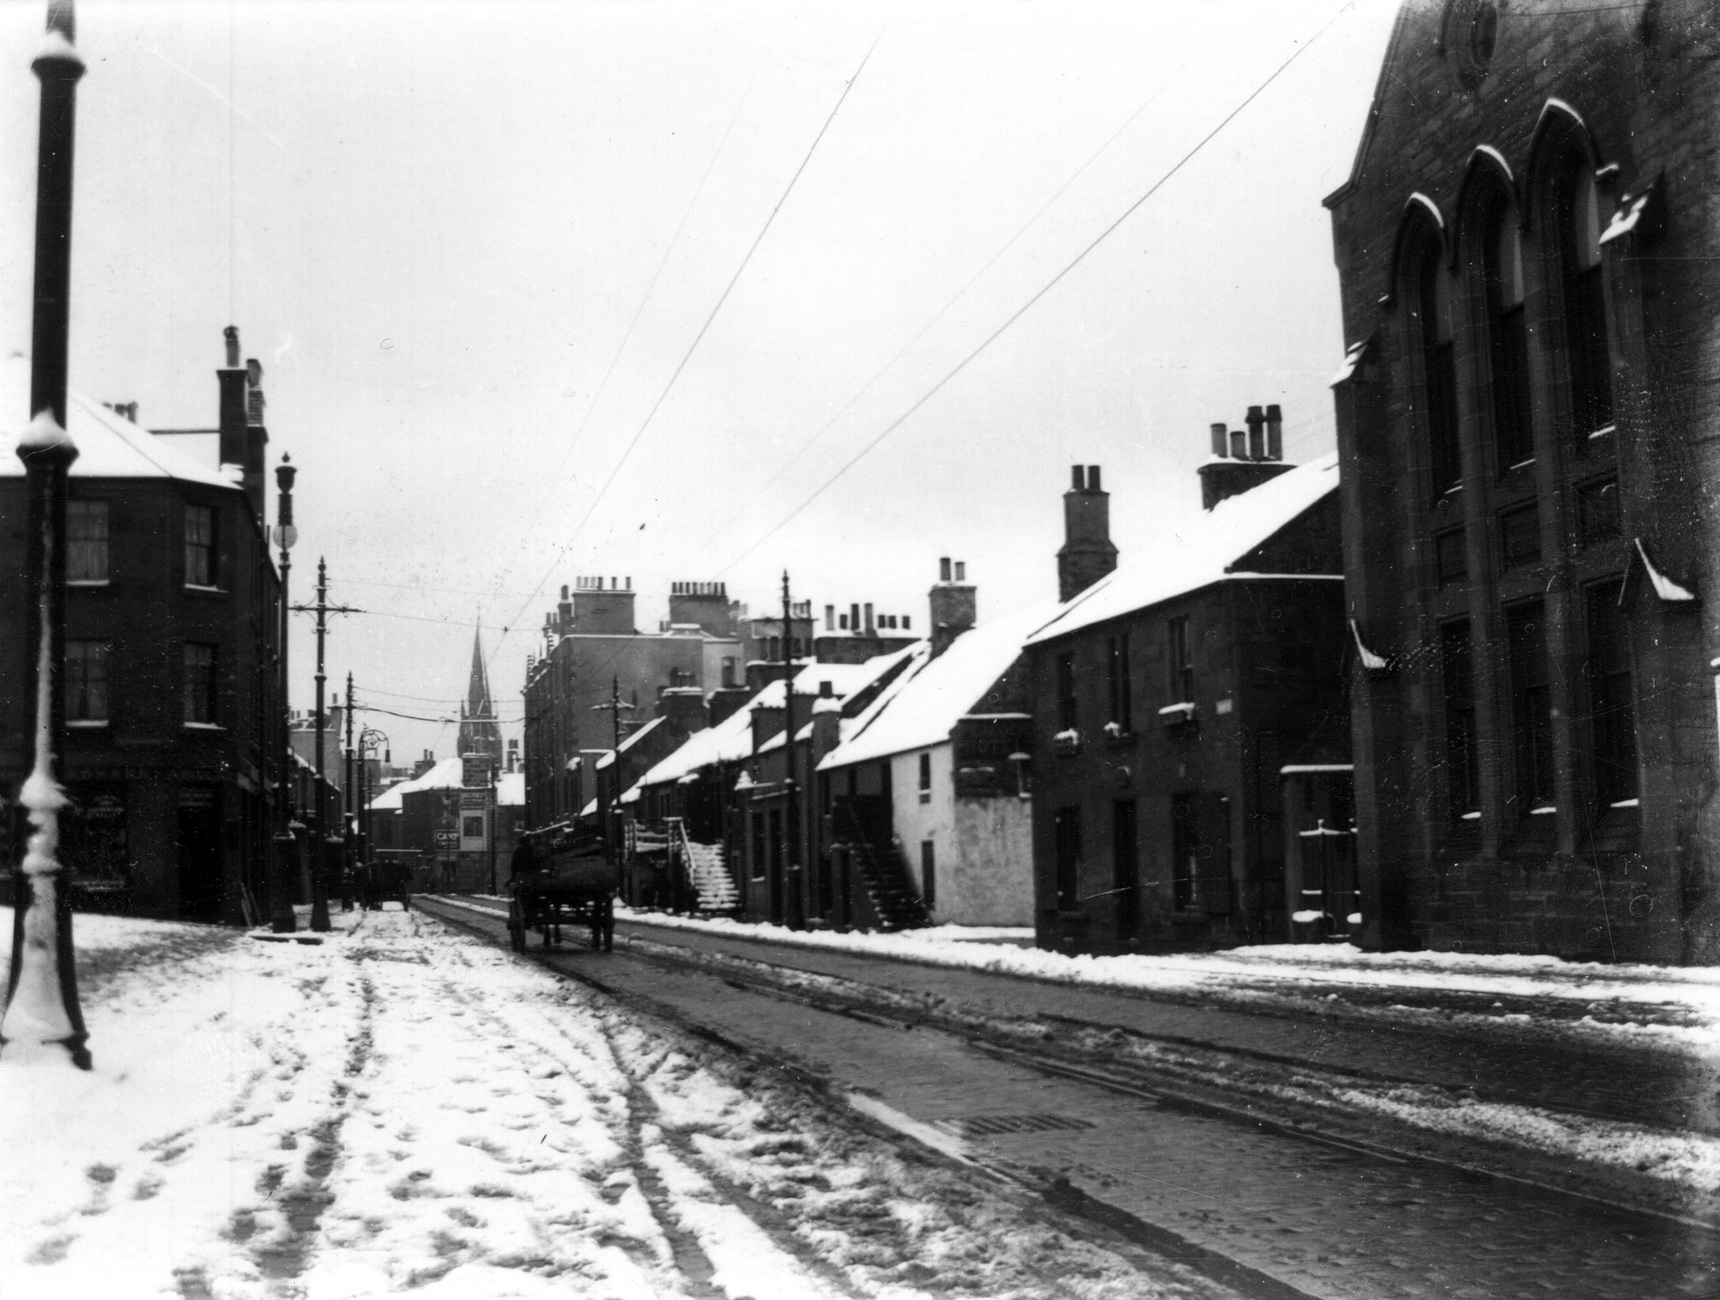 Annfield Looking West Toward Main Street In The Snow c.1960